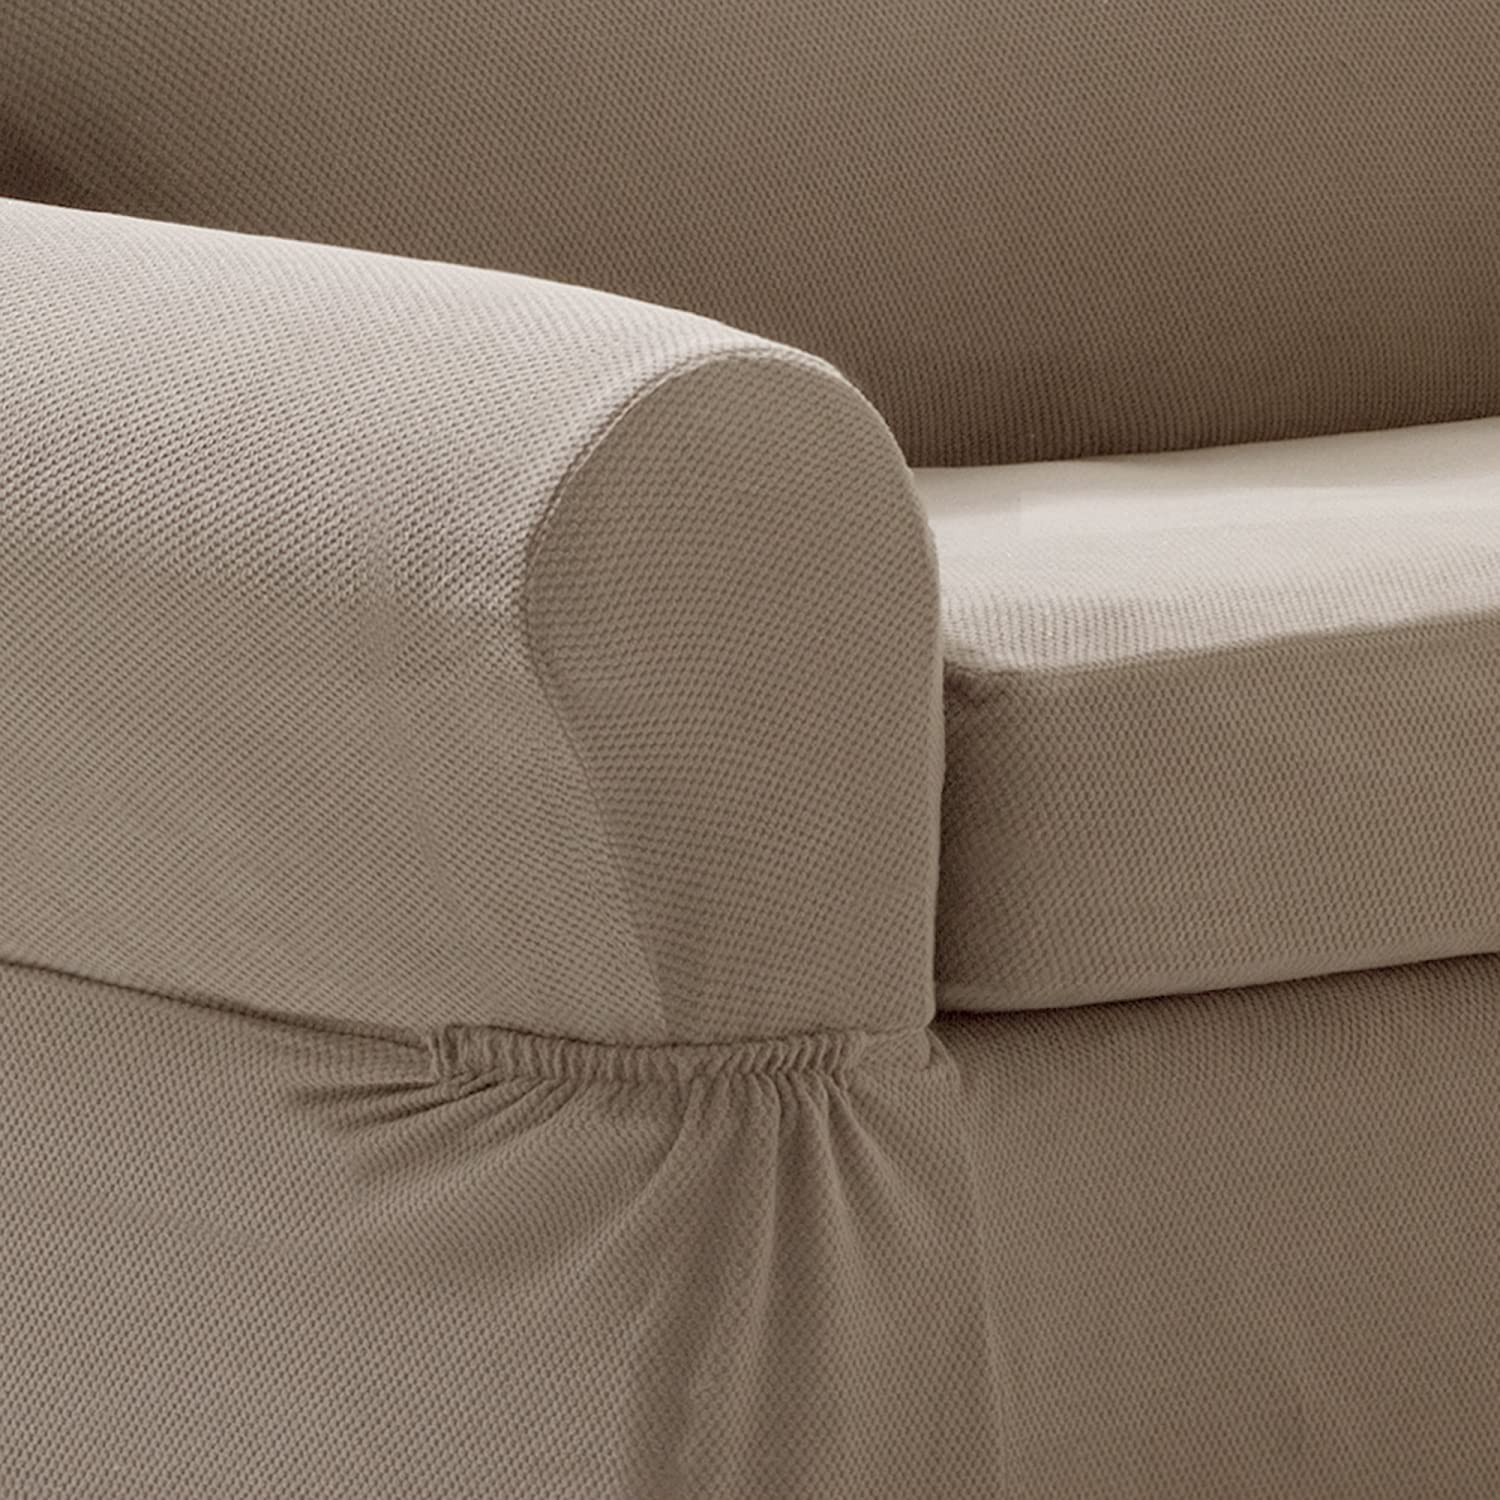 MAYTEX Pixel Ultra Soft Stretch 2 Piece Loveseat Furniture Cover Slipcover Chocolate Brown